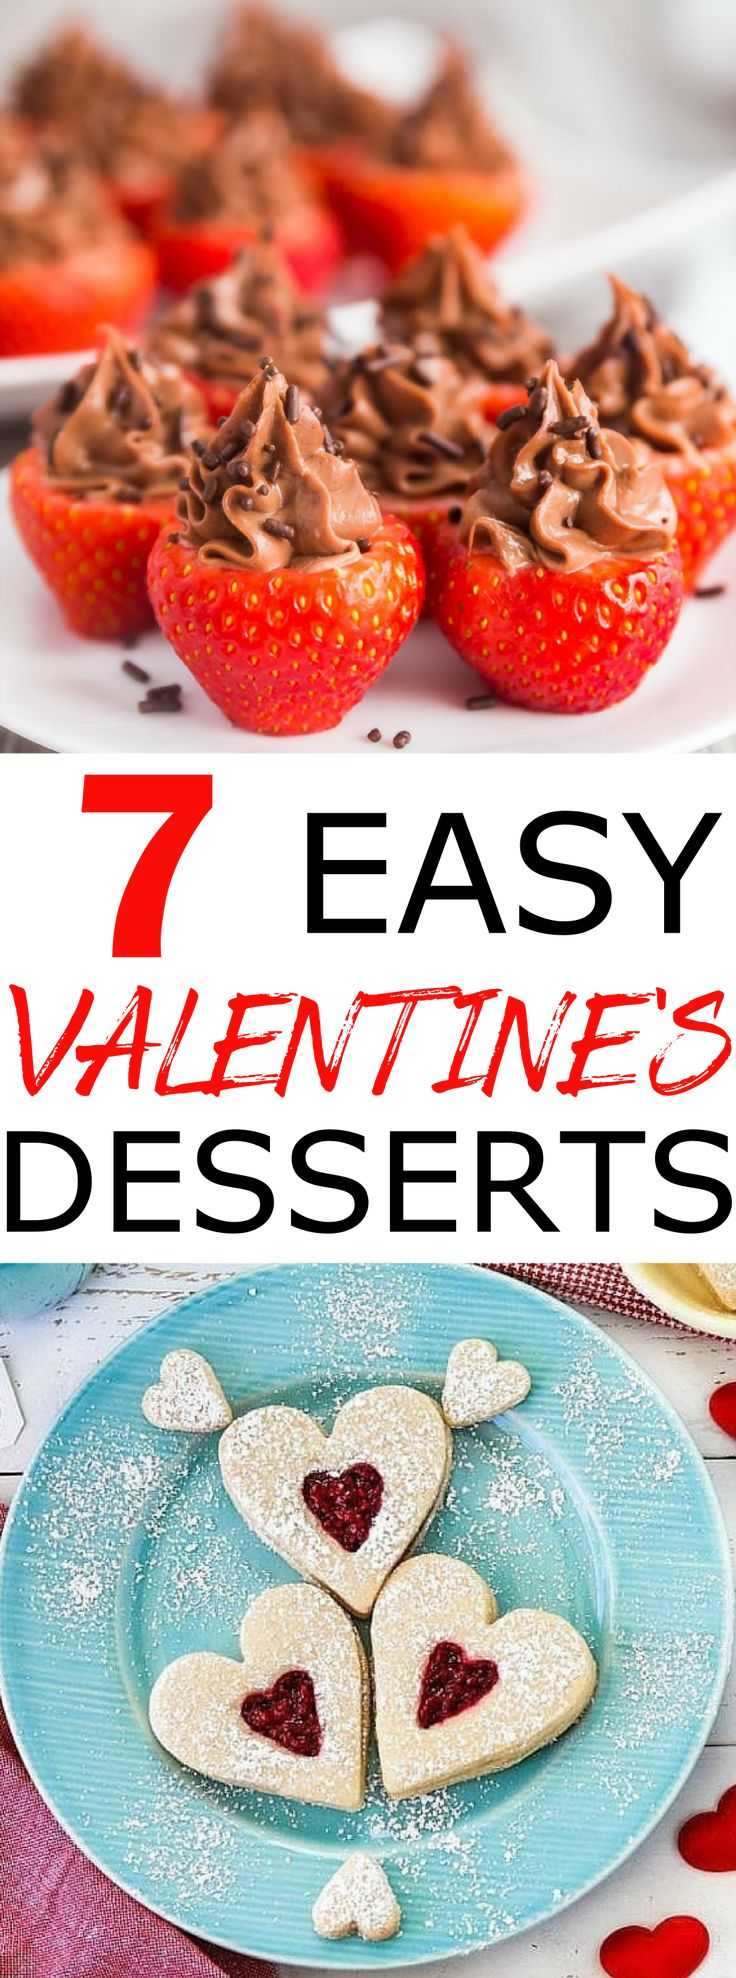 Need some last minute Valentine's day desserts inspirations? Here are 7 easy romantic desserts for two that will save your 2018 Valentine's day #valentinesday #valentines #dessert #dessertrecipes #romanticdessertfortwo